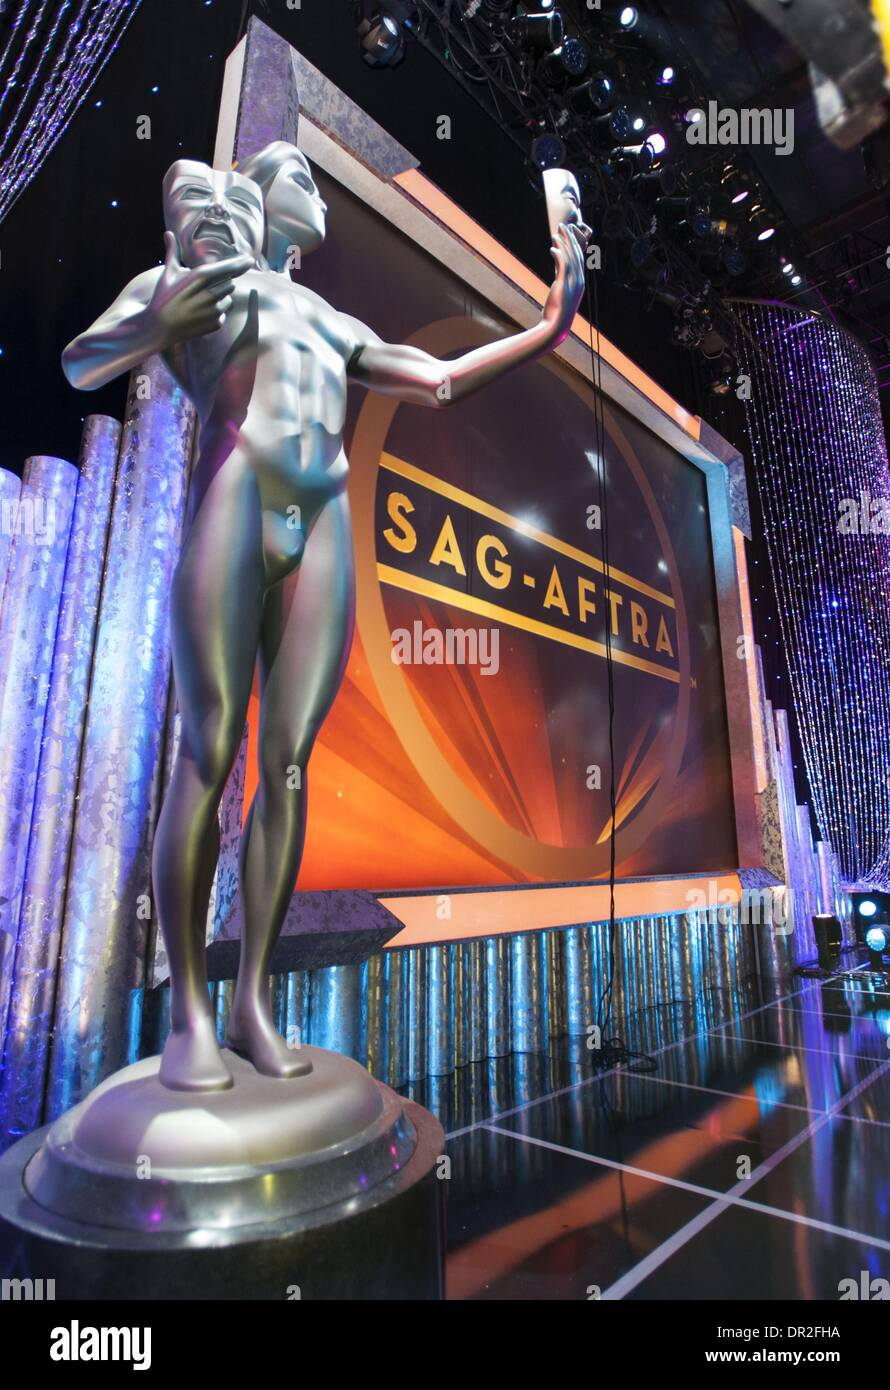 Los Angeles, California, USA. 17th Jan, 2014. A larger than life SAG Award Statuette on stage as a back drop at the Shrine Auditorium. The Screen Actors Guild made their final preparations on Friday morning for what will be this year's 20th SAG Awards event Saturday. Set-up crews pulled out the red carpet as they finalized lighting and TV camera locations. The Screen Actors Guild Awards (also known as the SAG Awards) is given to recognize outstanding performances in film and primetime television. Credit:  David Bro/ZUMAPRESS.com/Alamy Live News - Stock Image